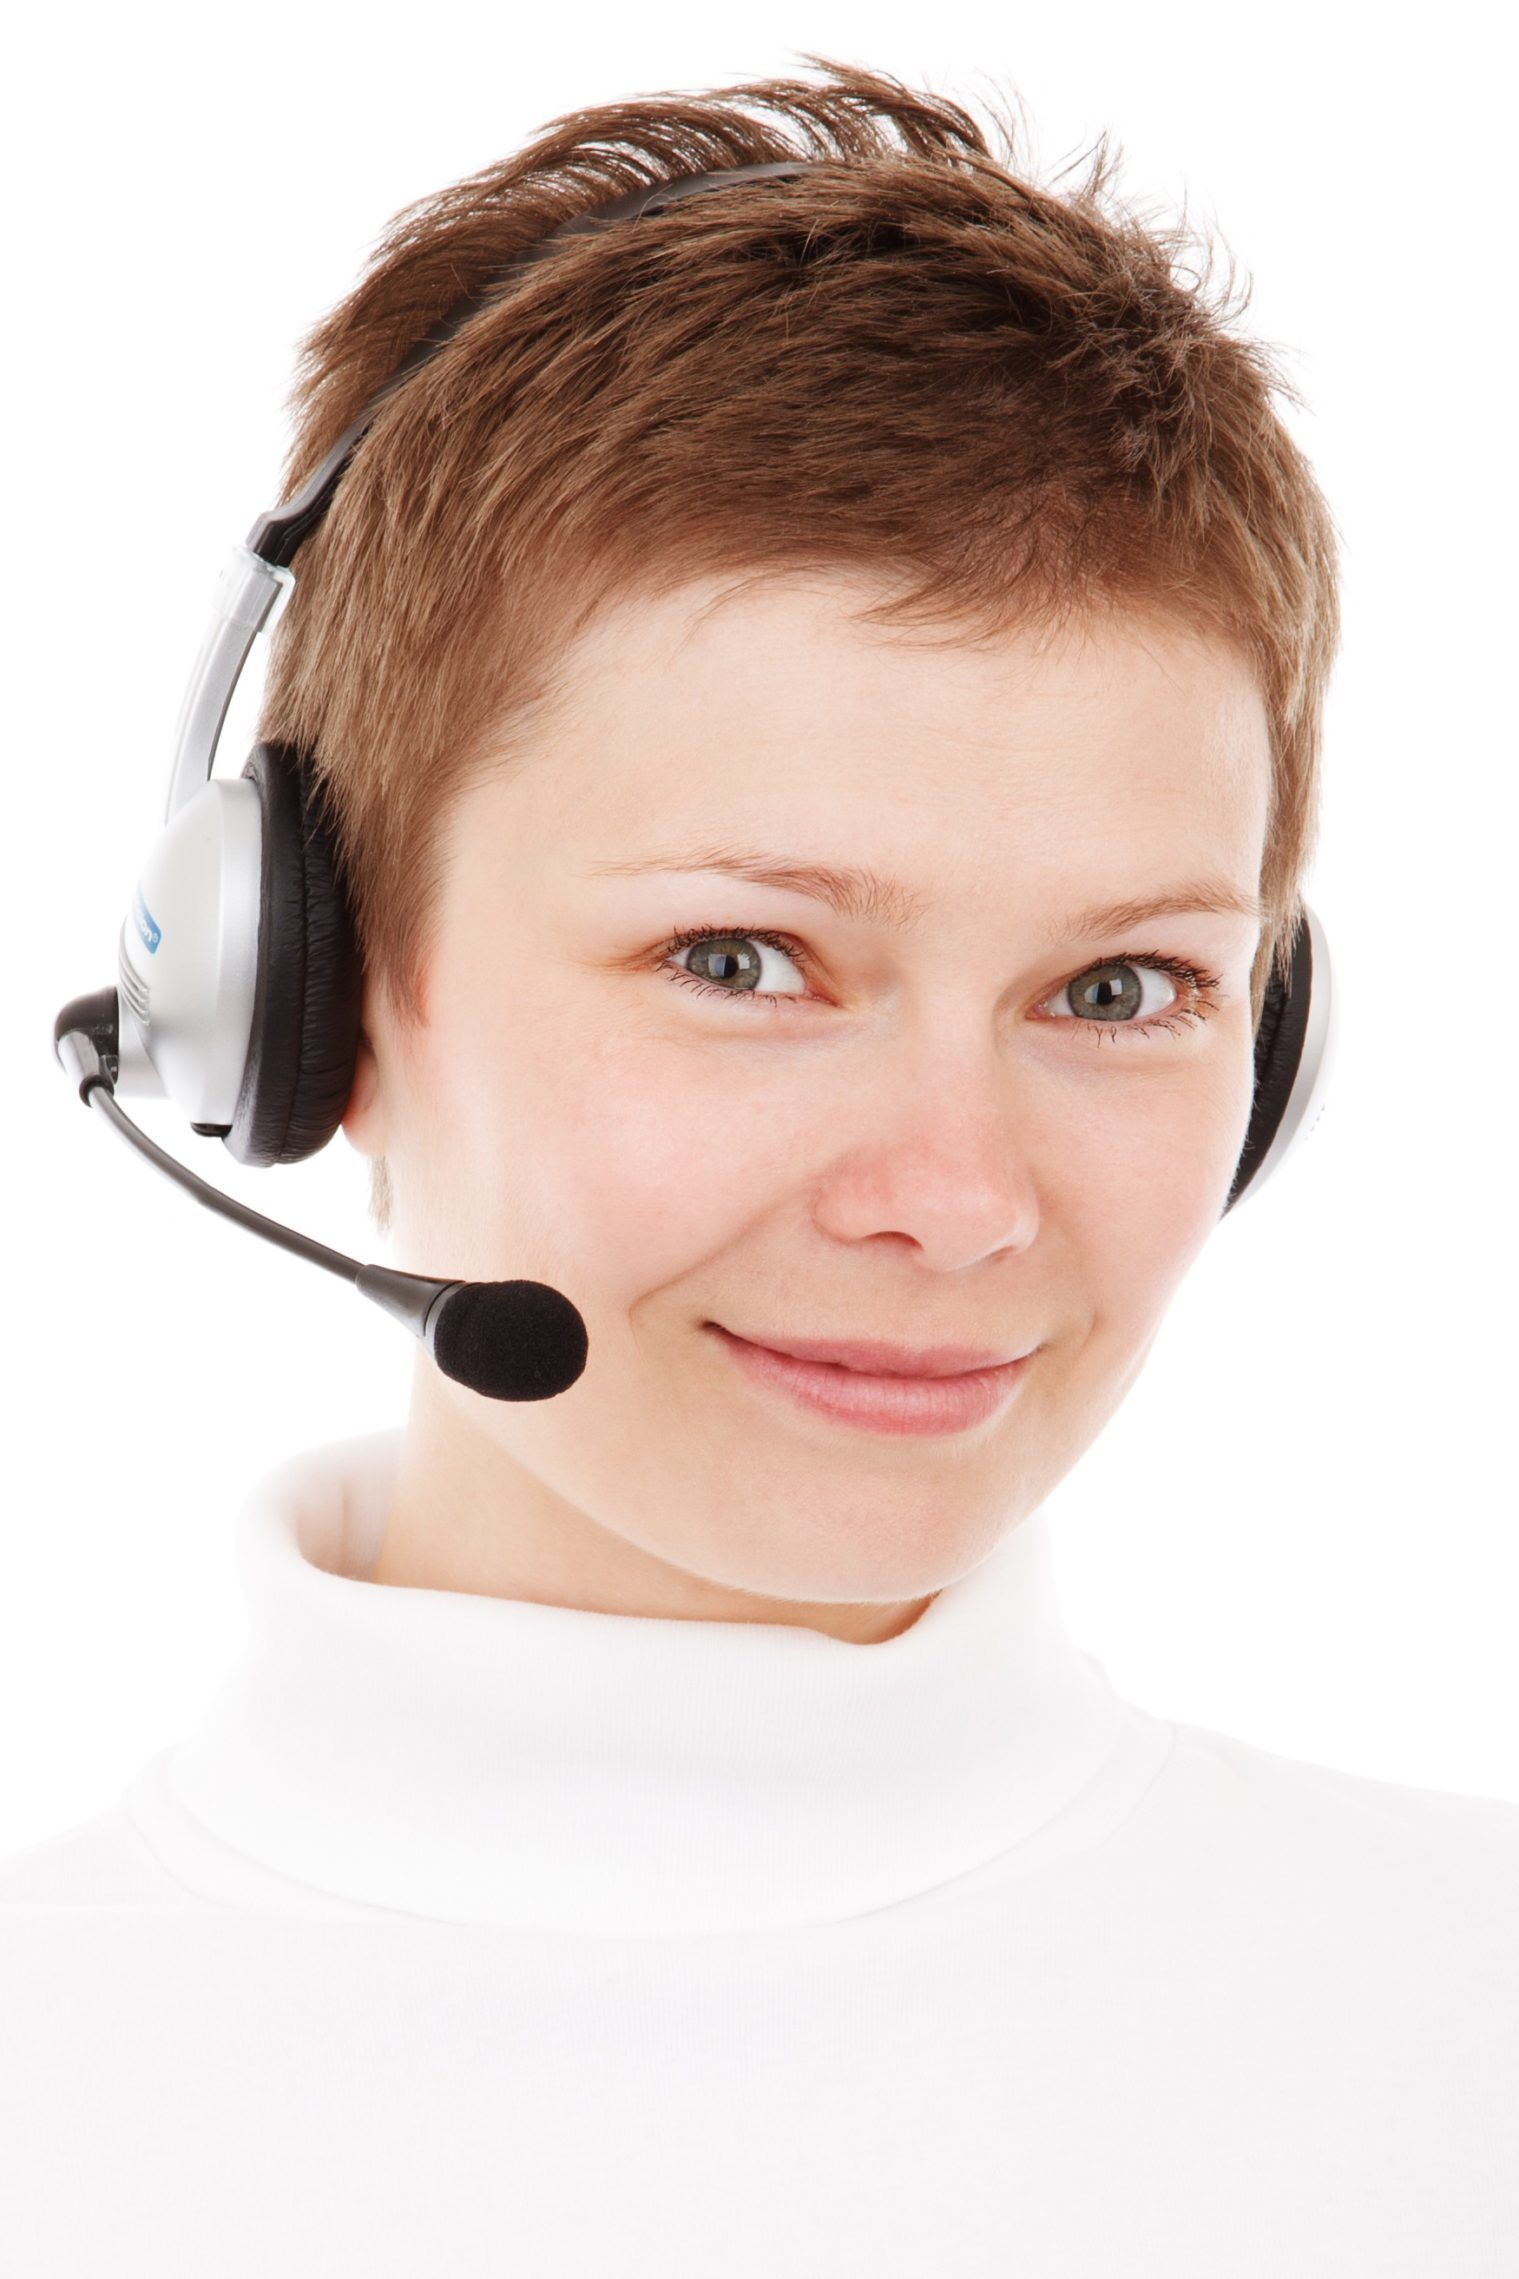 Agent Business Call Center